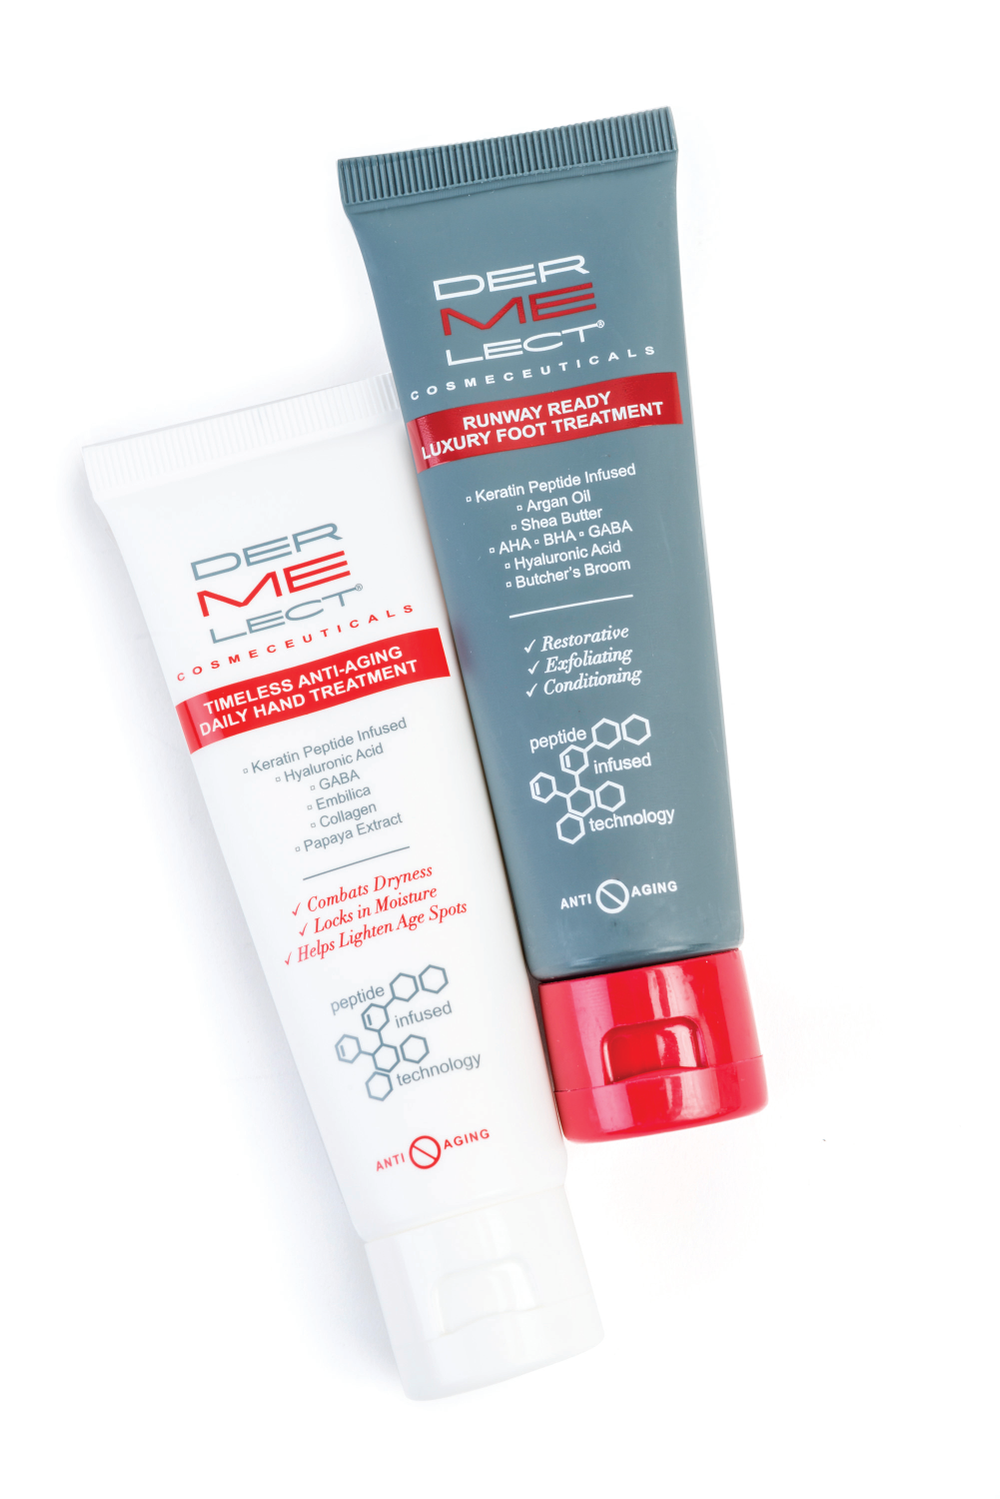 <p>The Essential Hand &amp; Foot Duo from Dermelect includes an anti-aging hand treatment that restores a youthful appearance to hands, and the foot treatment features a formula that renews the look and feel of worn, tired feet.&nbsp;</p>